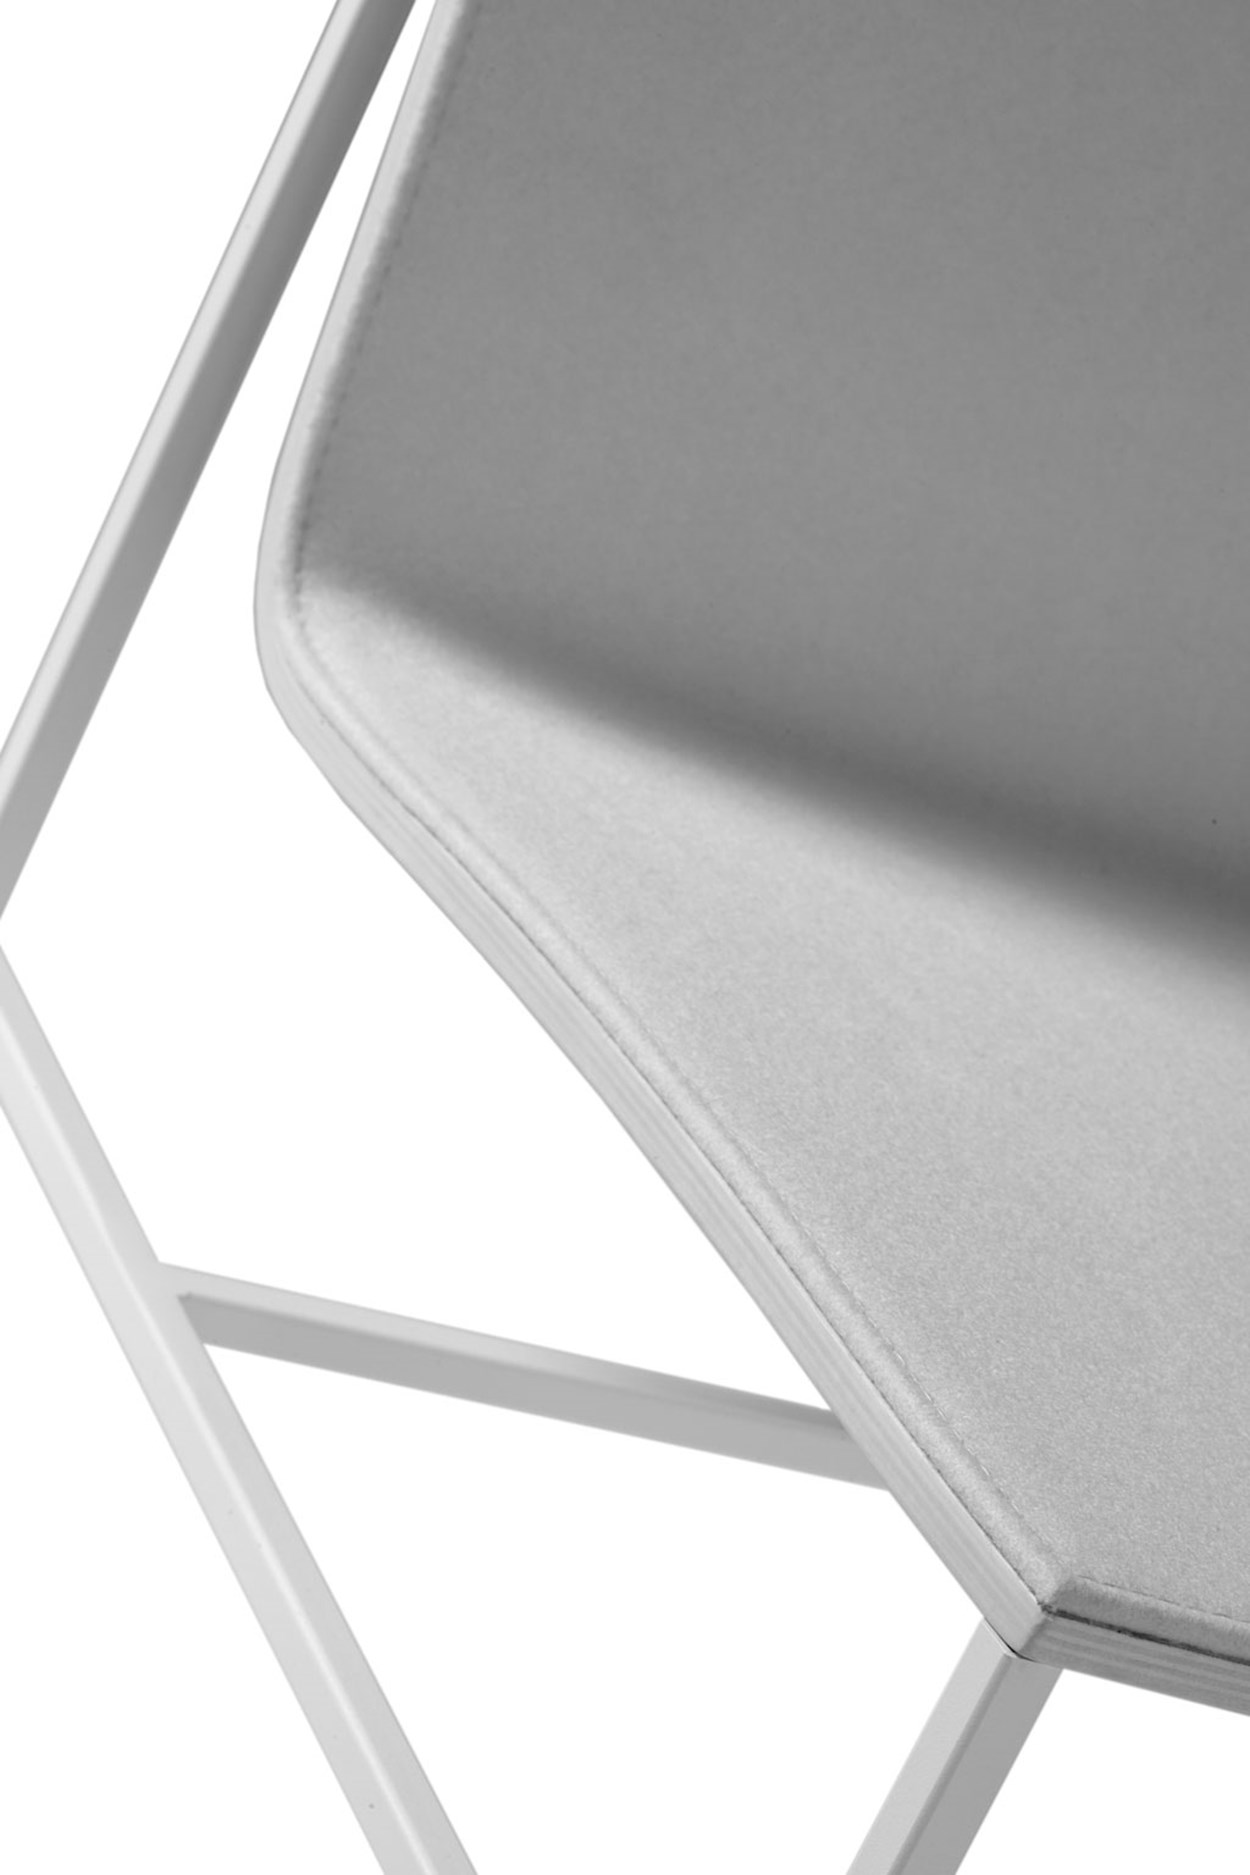 capdell-a-collection-chair-04.jpg